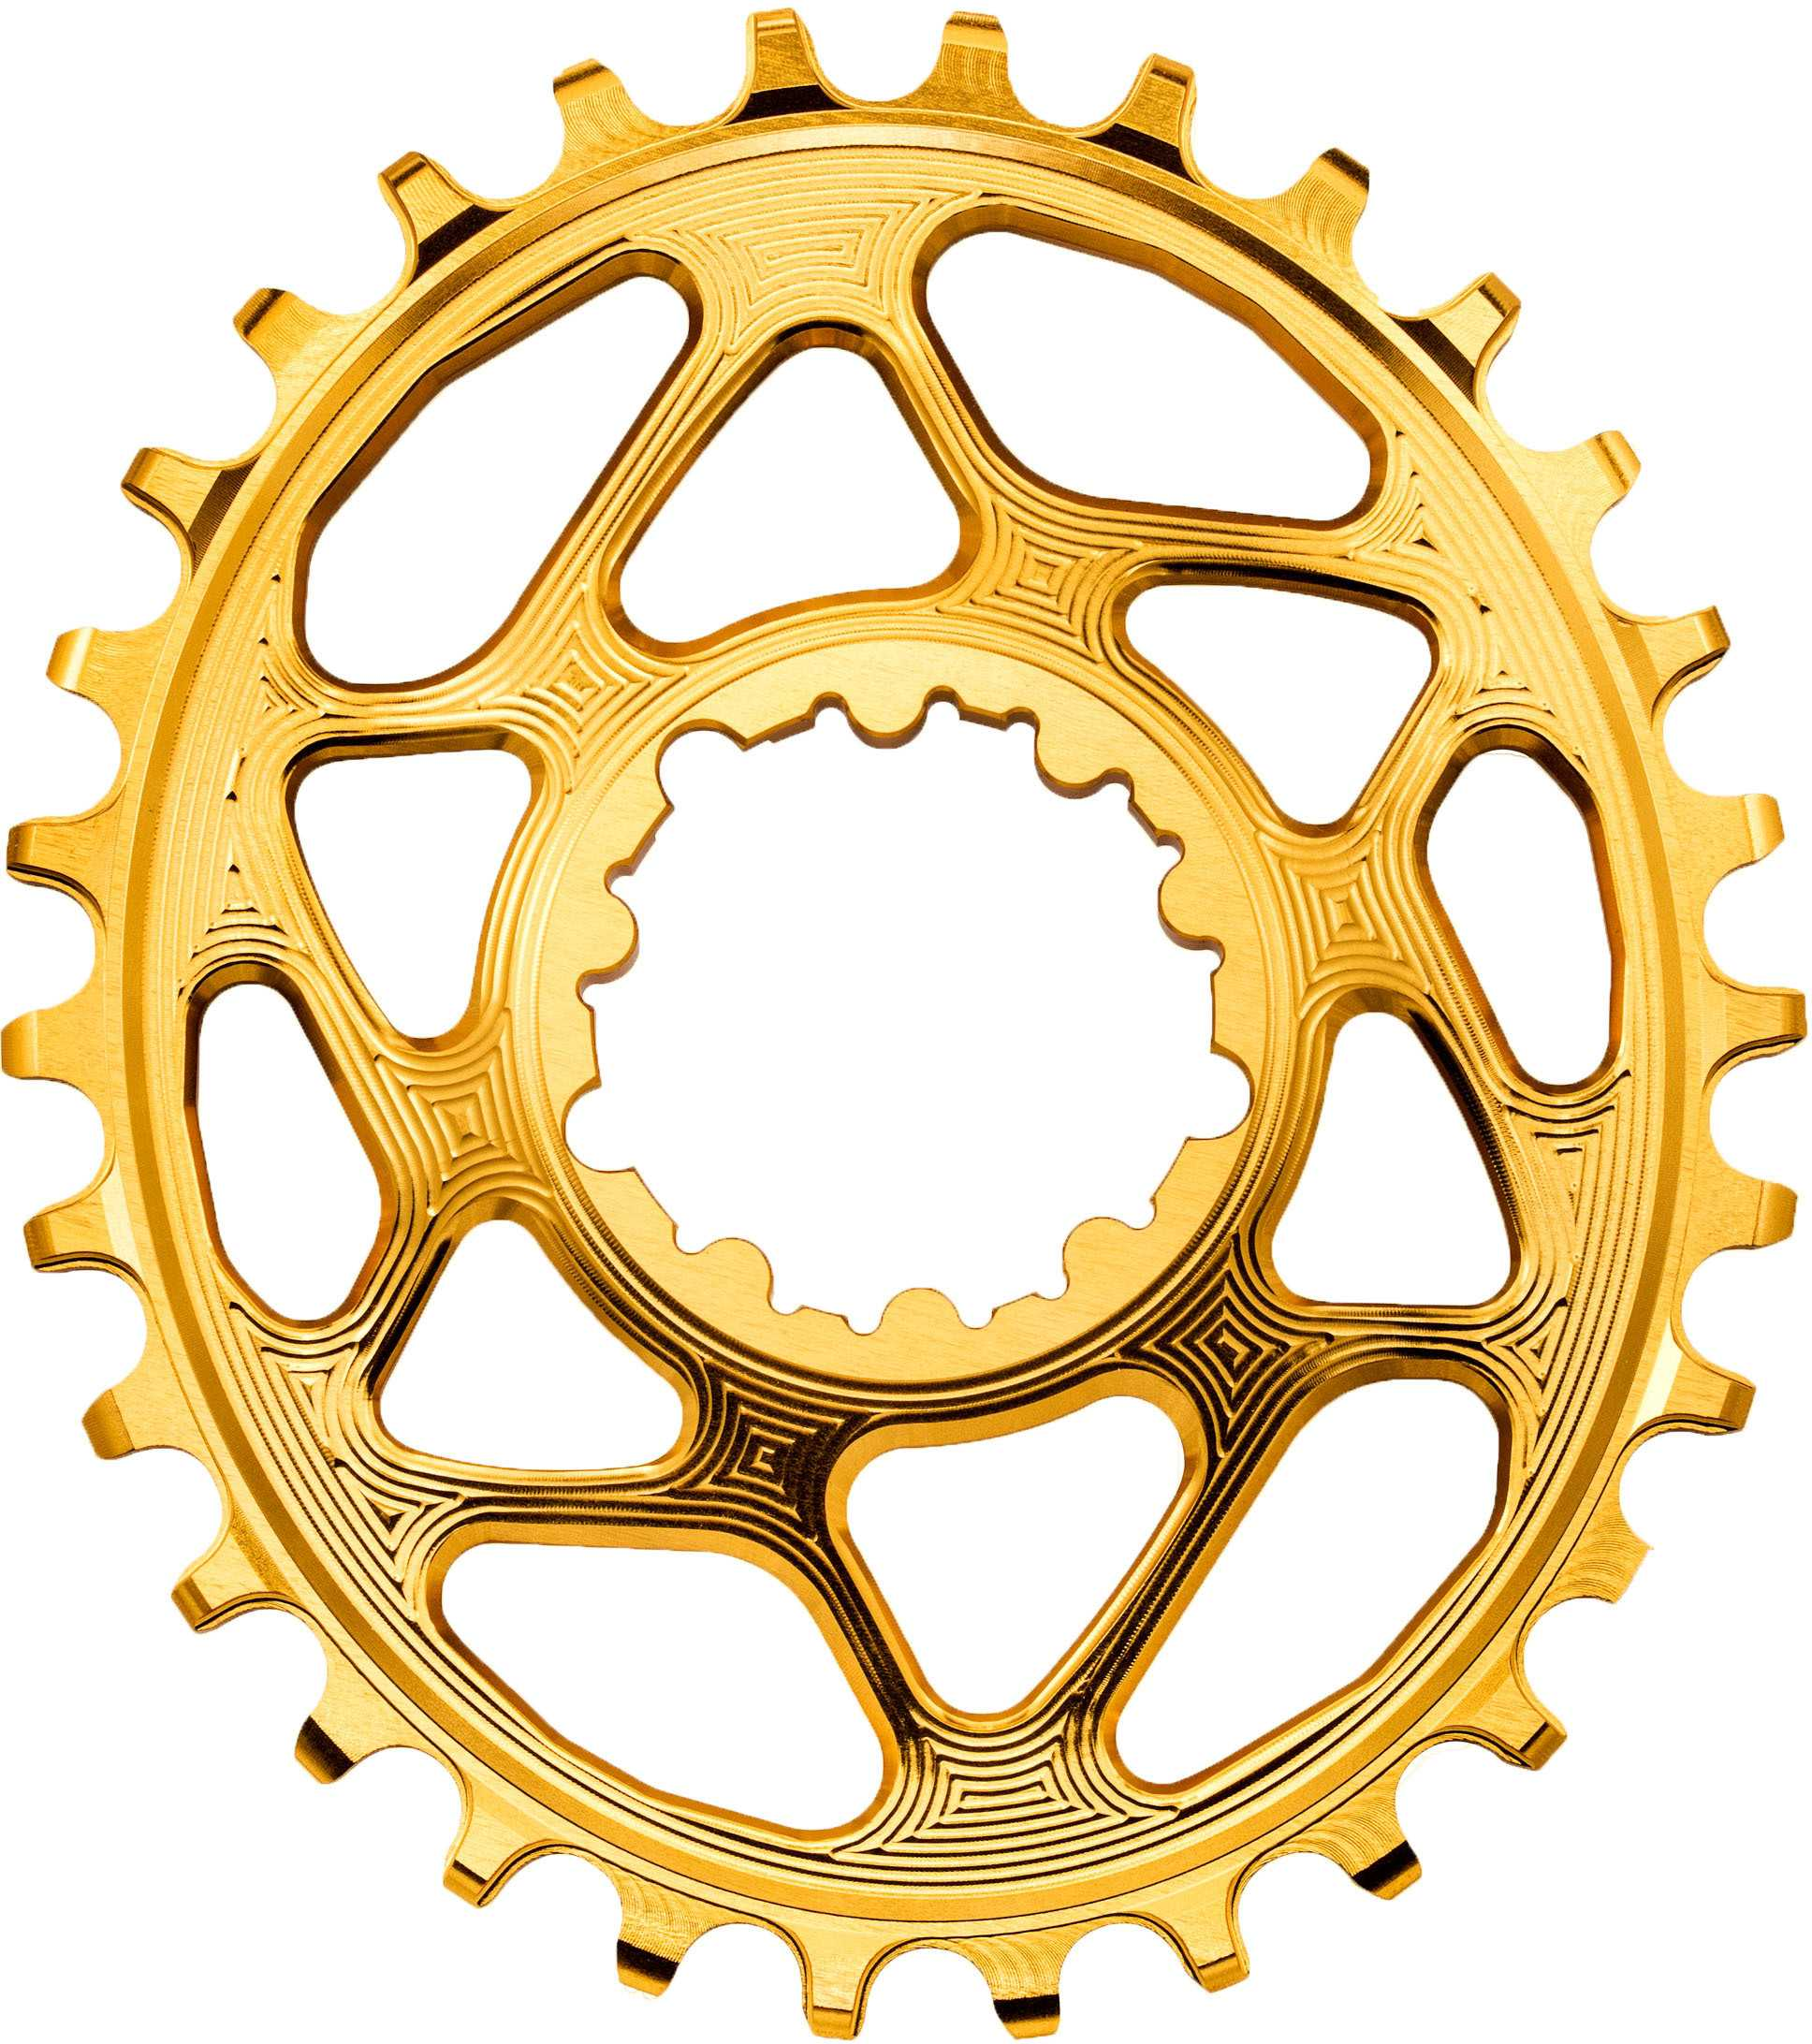 FRONT KLINGE ABSOLUTEBLACK OVAL NARROW-WIDE SRAM GXP DIRECT MOUNT 30T GULD | chainrings_component